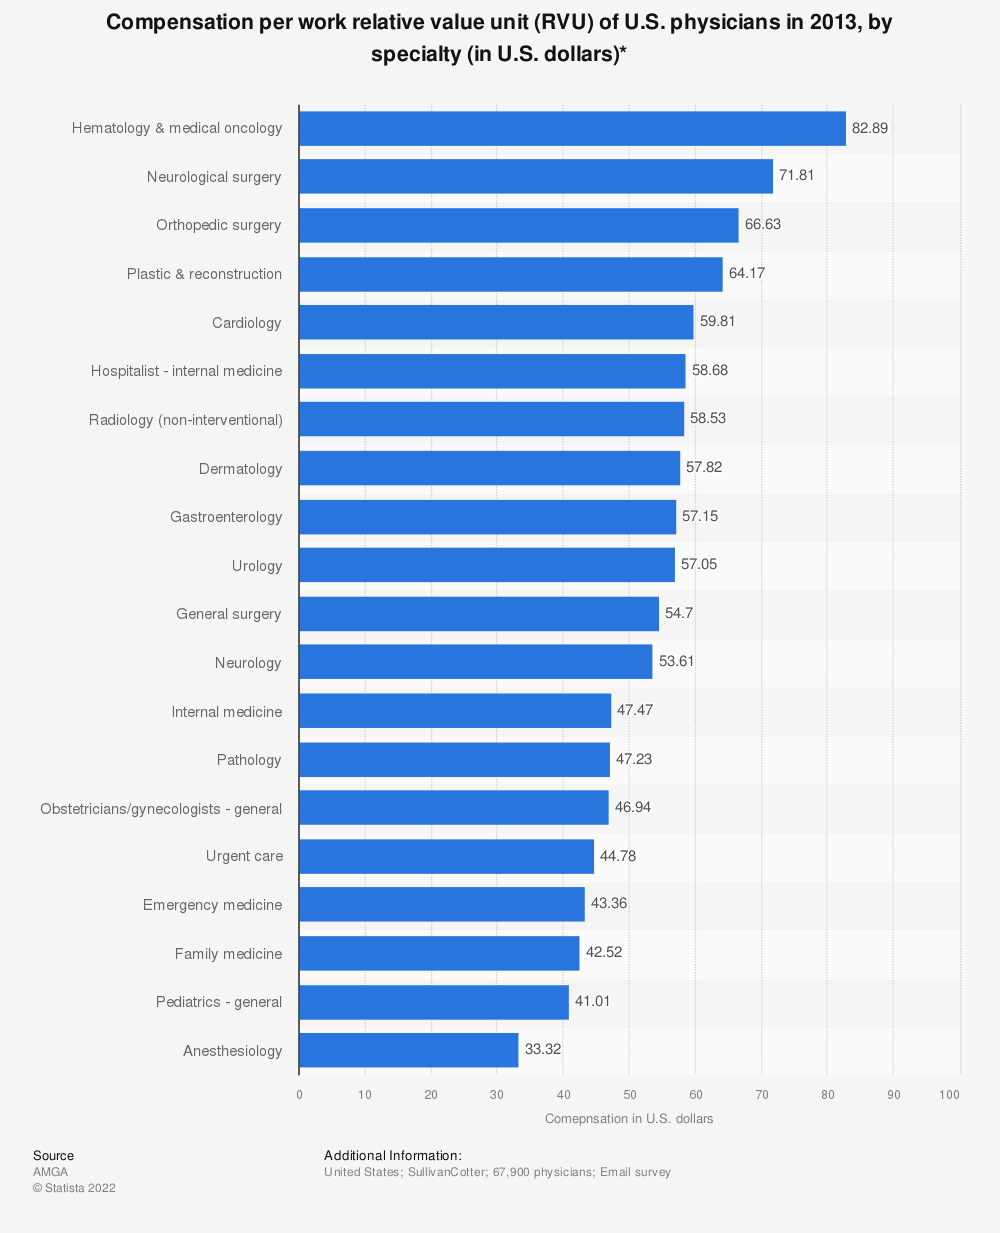 Statistic: Payment per work RVU (relative value unit) of U.S. physicians in 2013, by specialty (in U.S. dollars)* | Statista